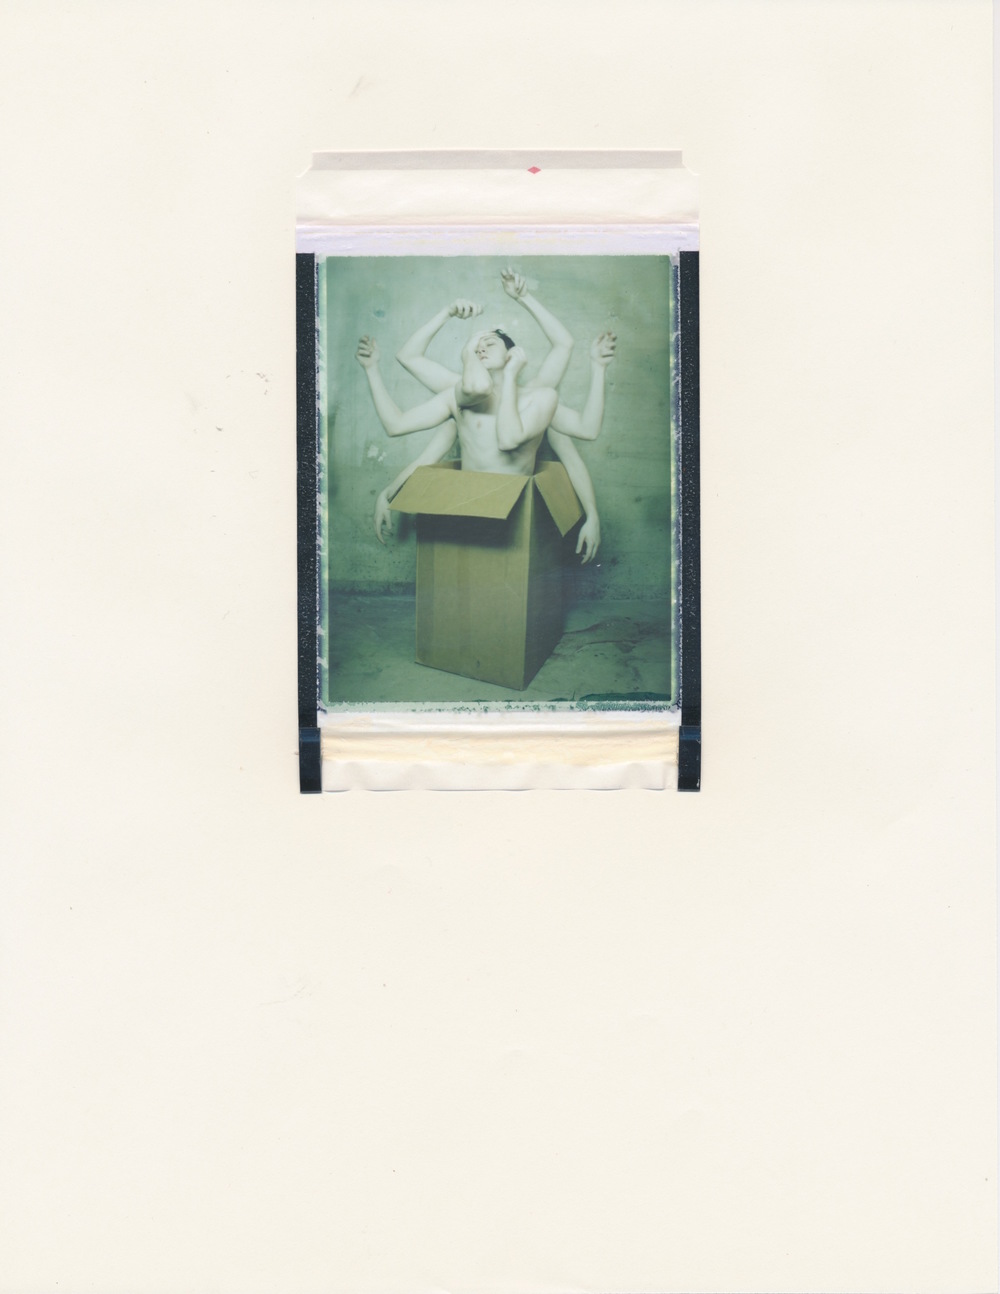 Human Obscura #9 (Figure in Box 2)   2015  Diffusion Transfer Print on Paper  8.5x11